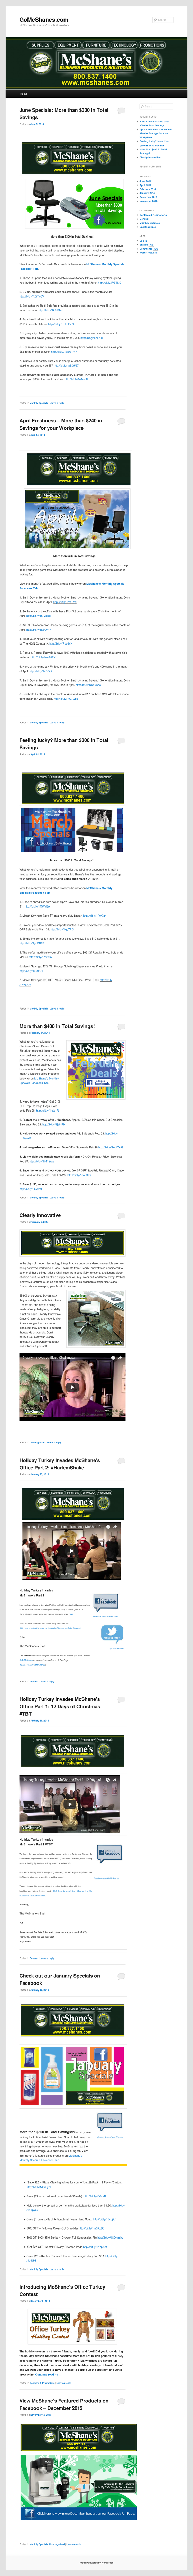 Mcshaneu0027s Business Products U0026 Solutions Website History